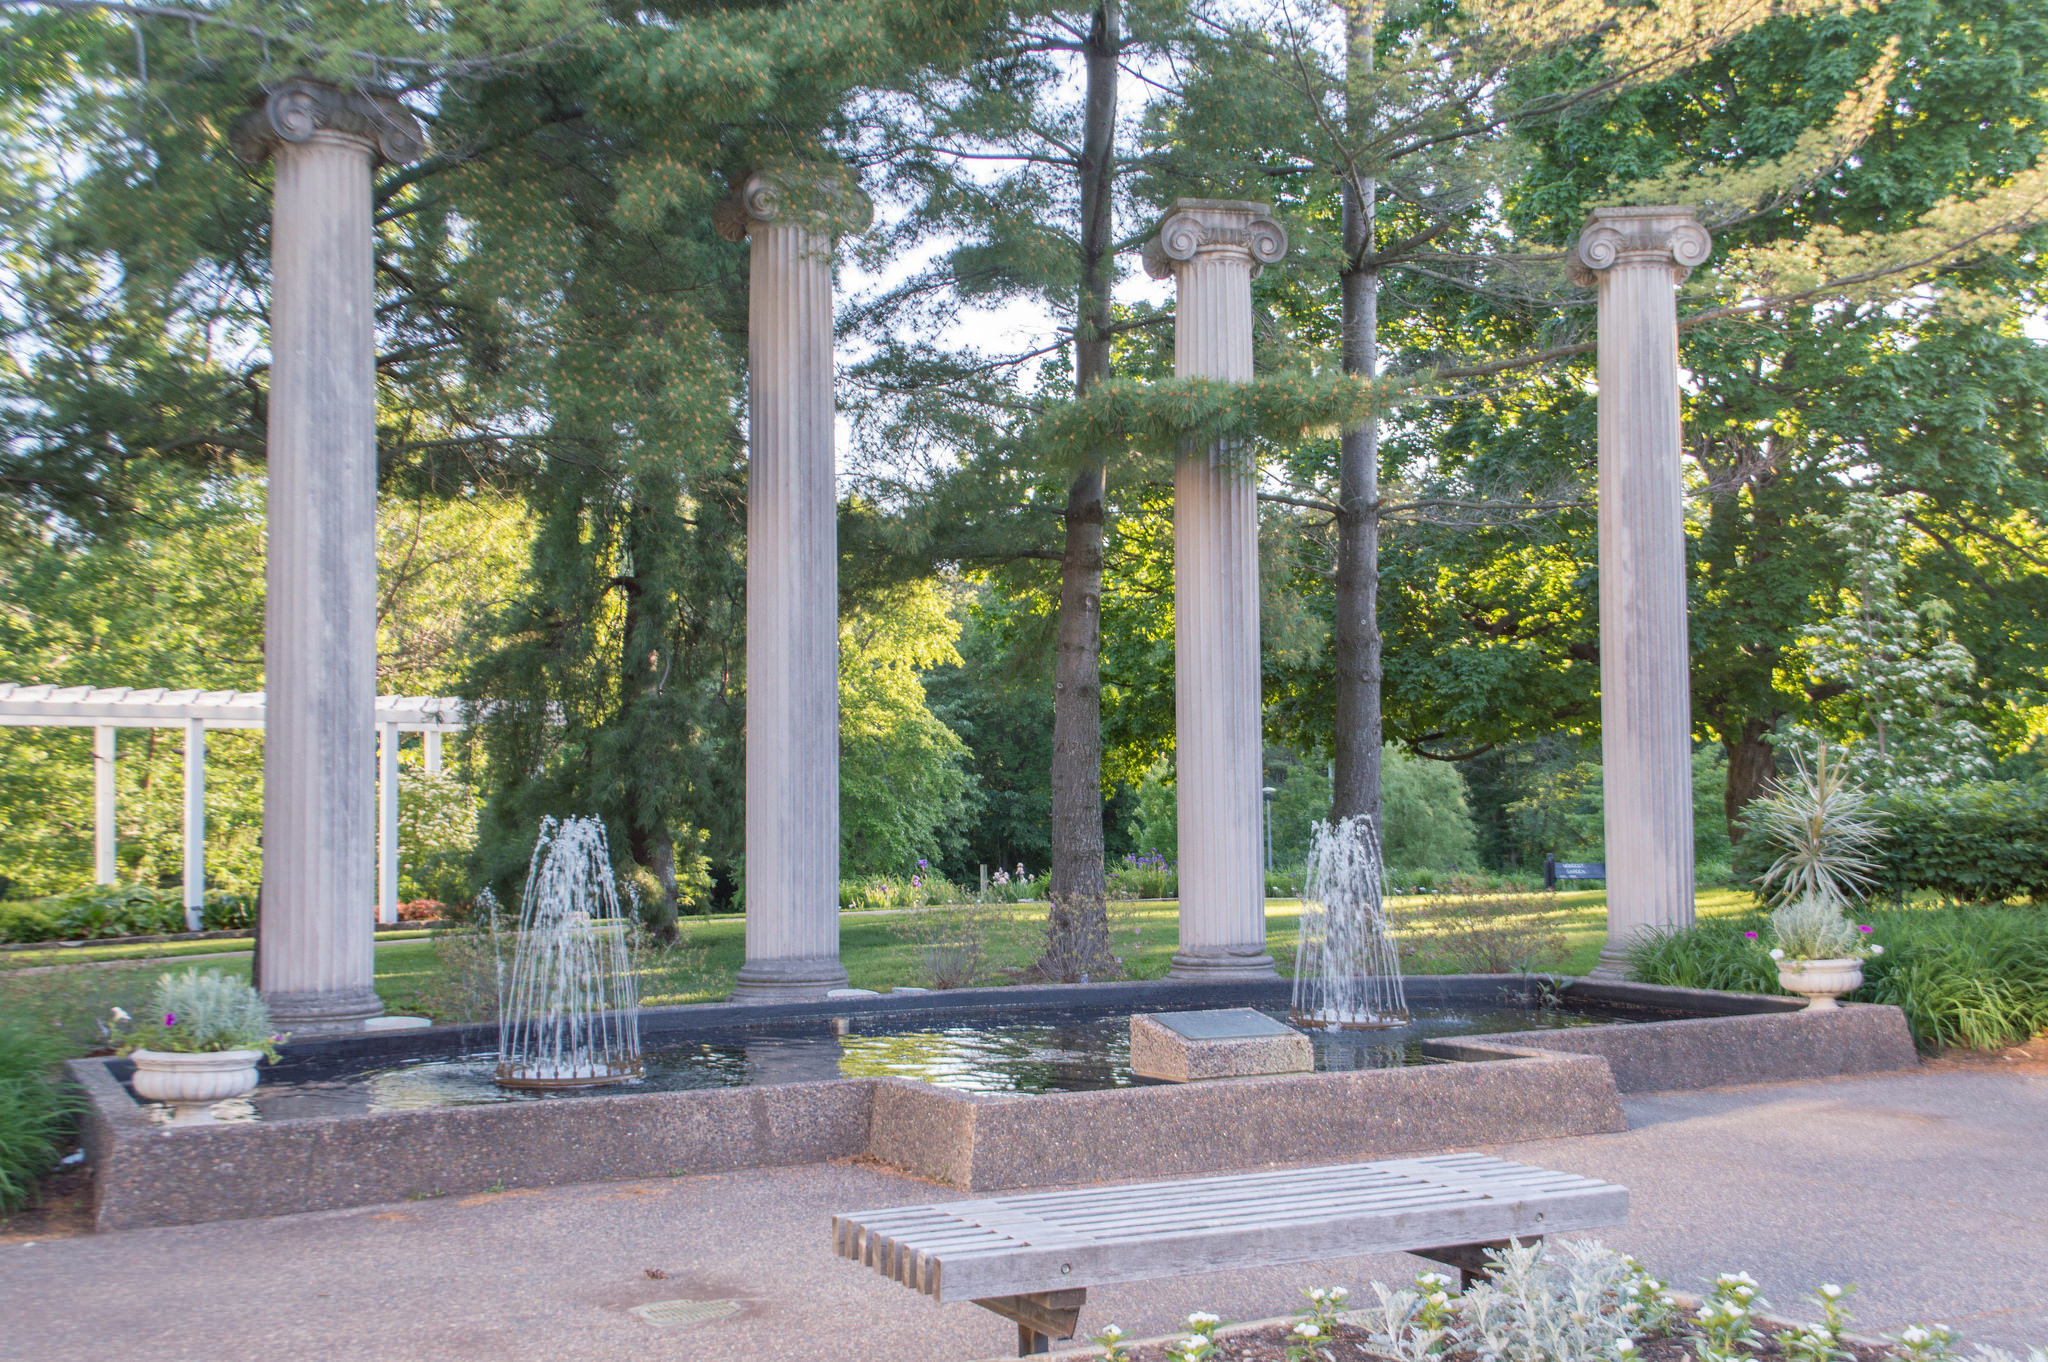 The Top 10 Things To Do And See In Springfield